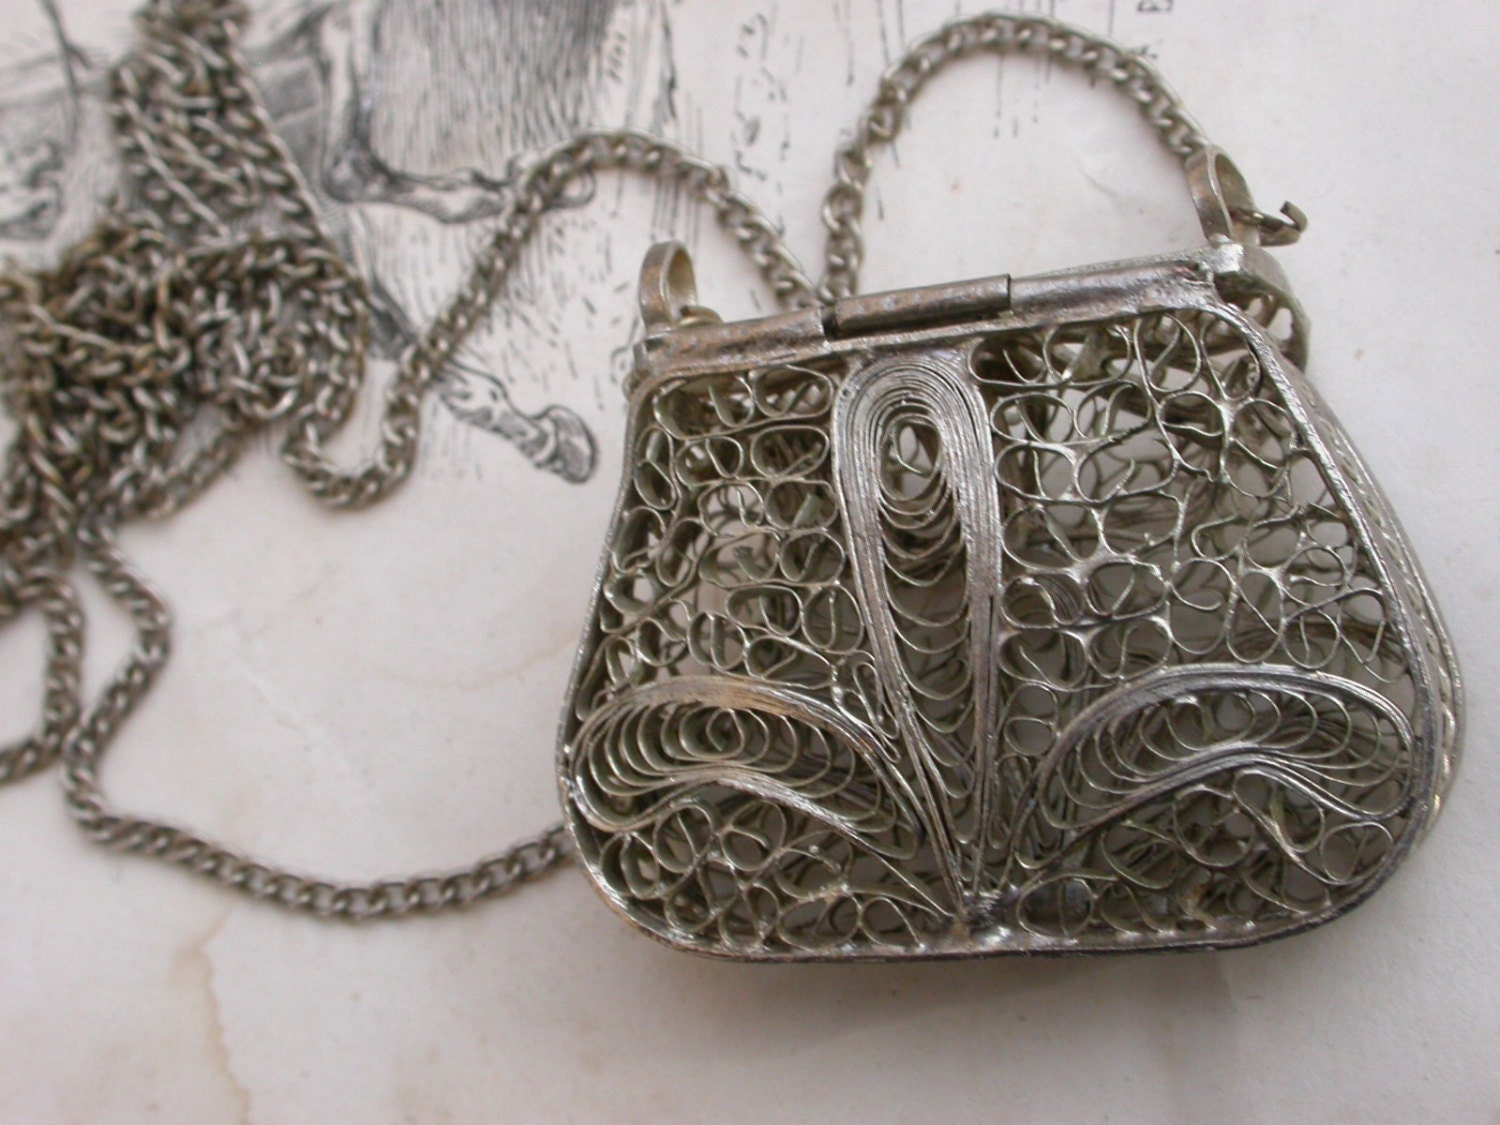 French Antique Filigree Handmade Purse Necklace Silver Purse